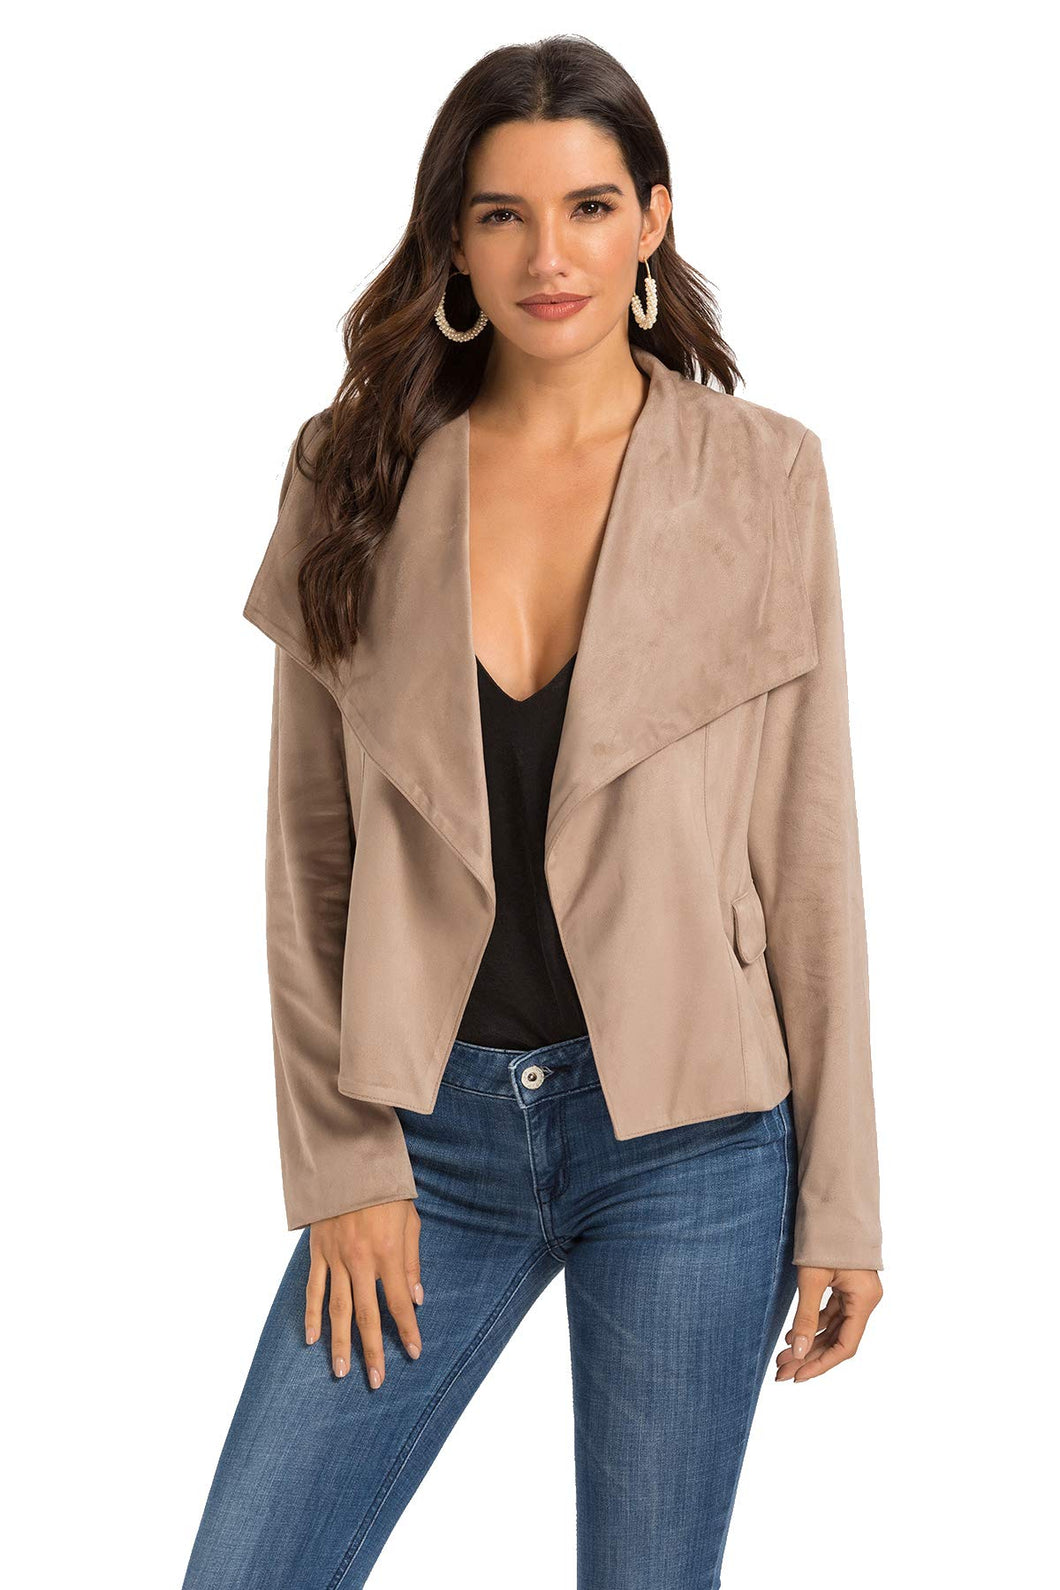 Women's Suede Leather Jacket